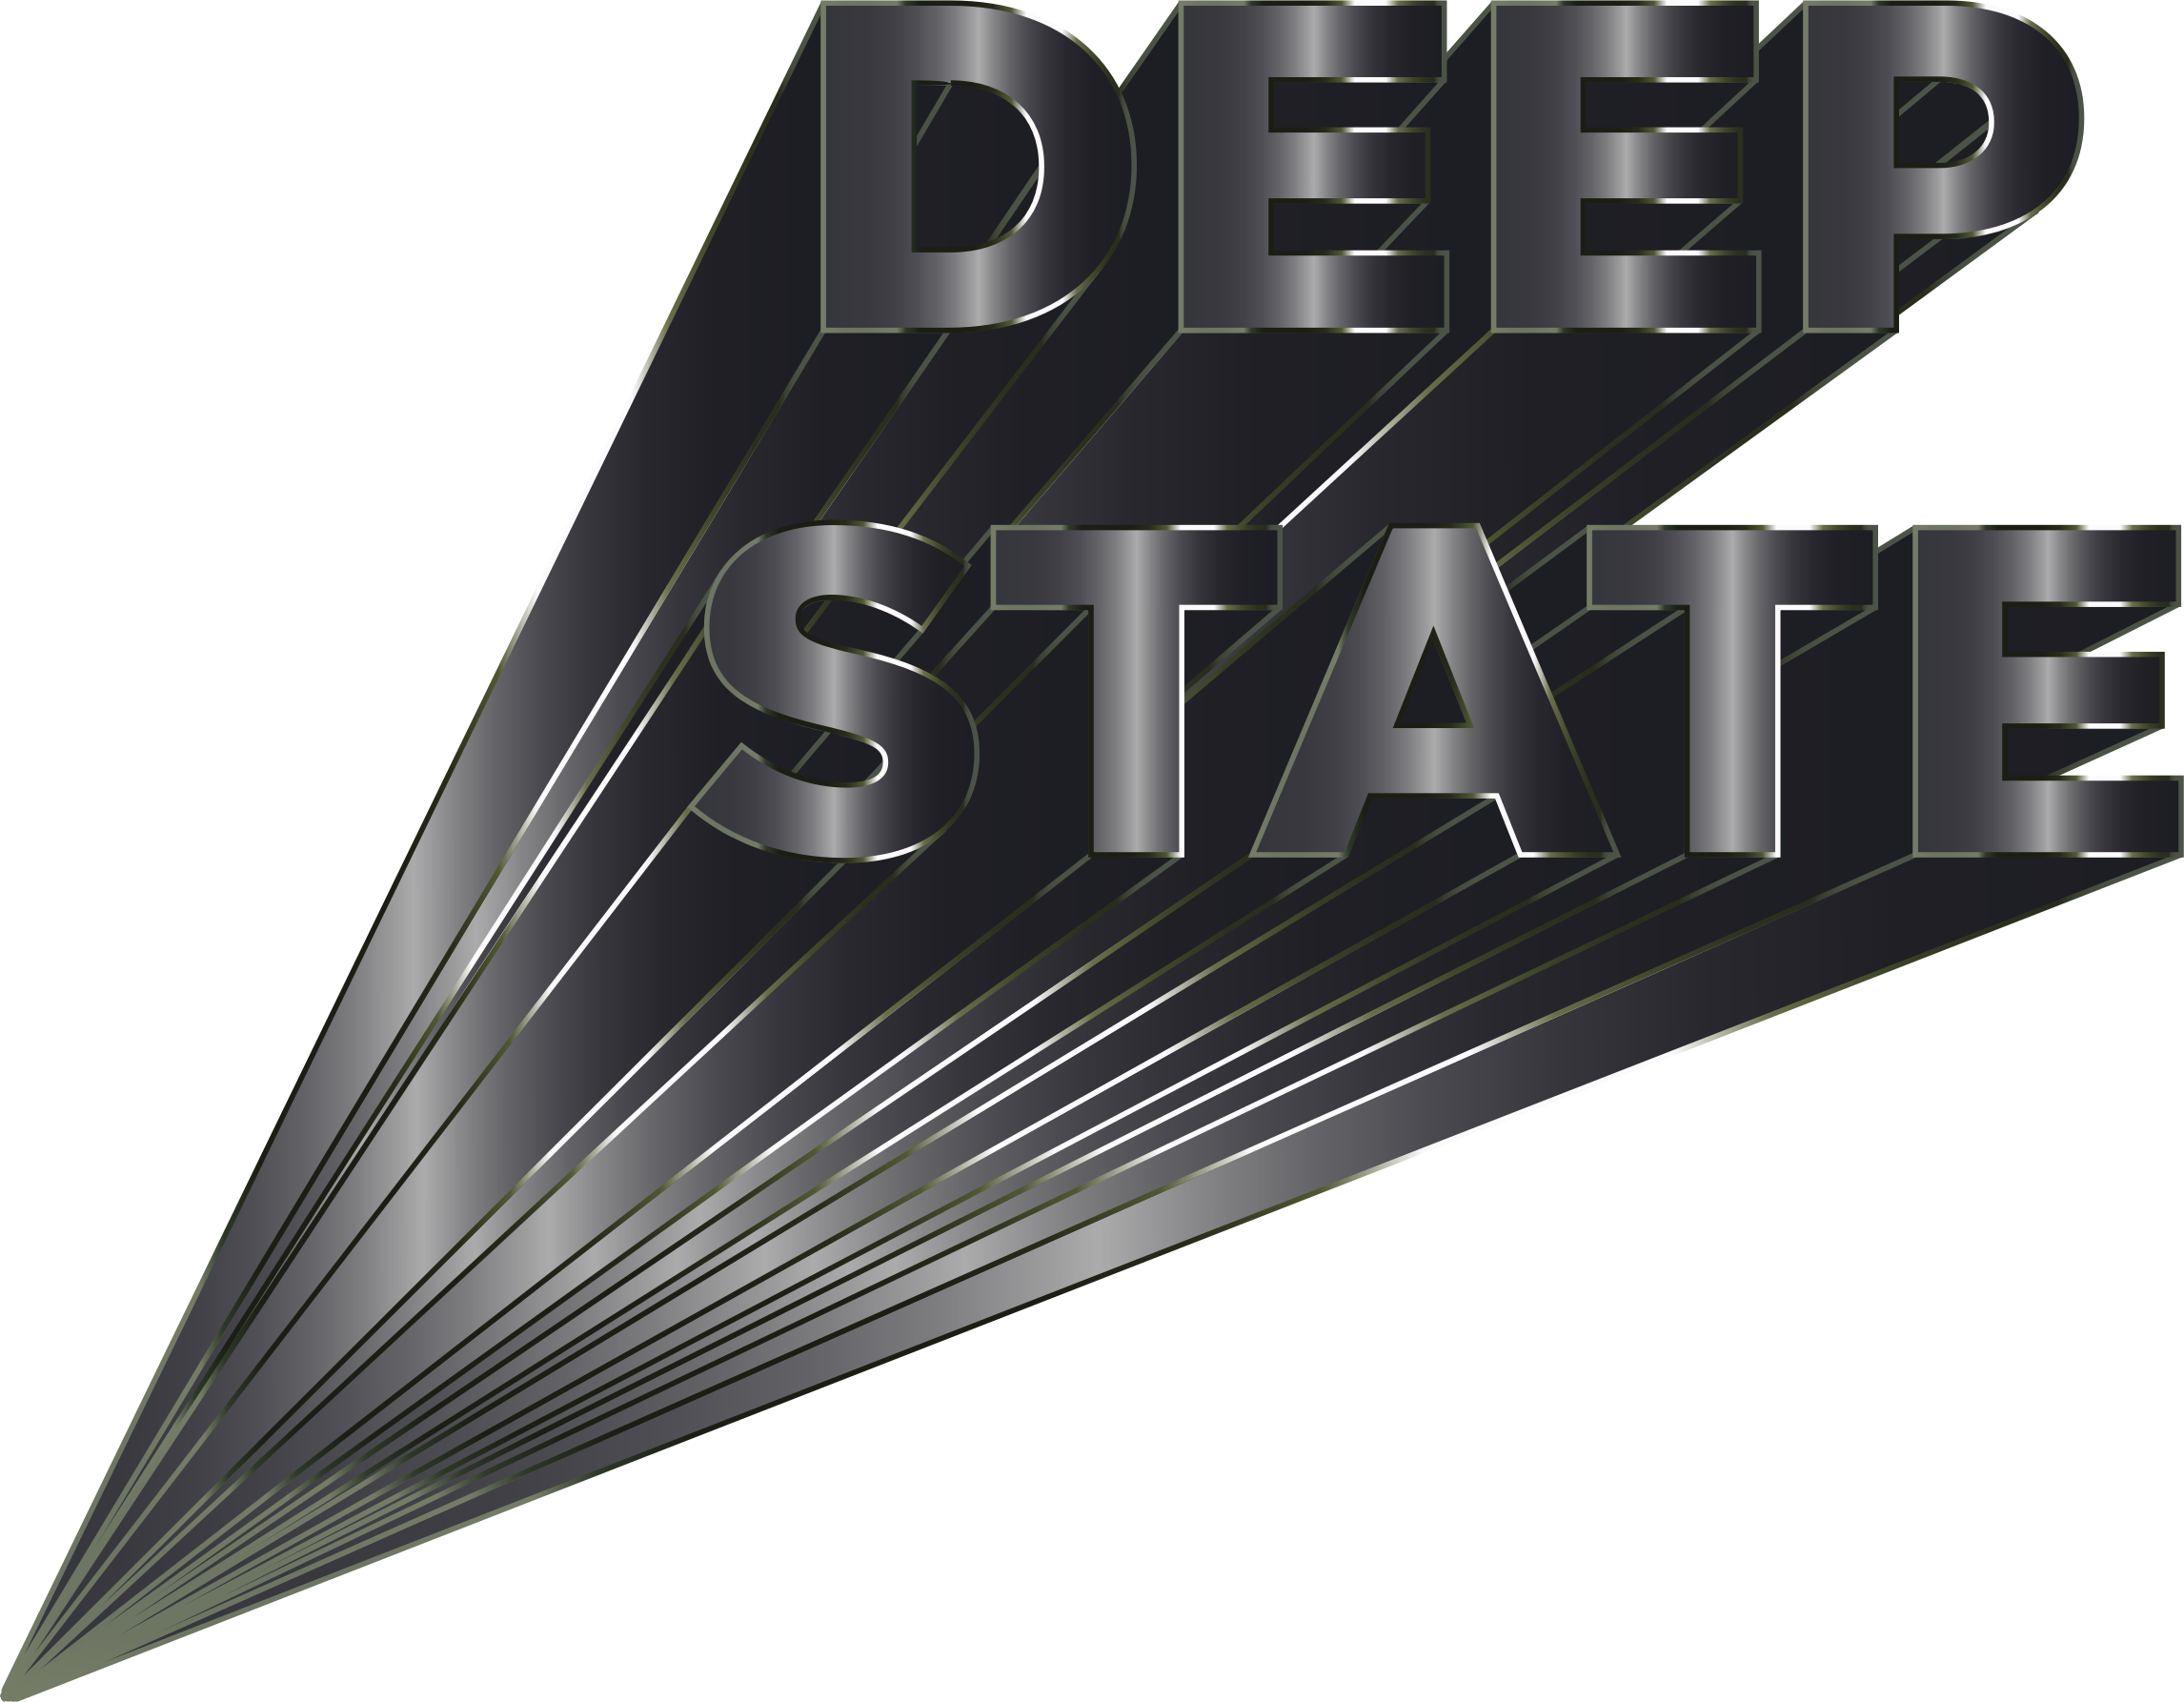 Deep State Typography 3 by GDJ